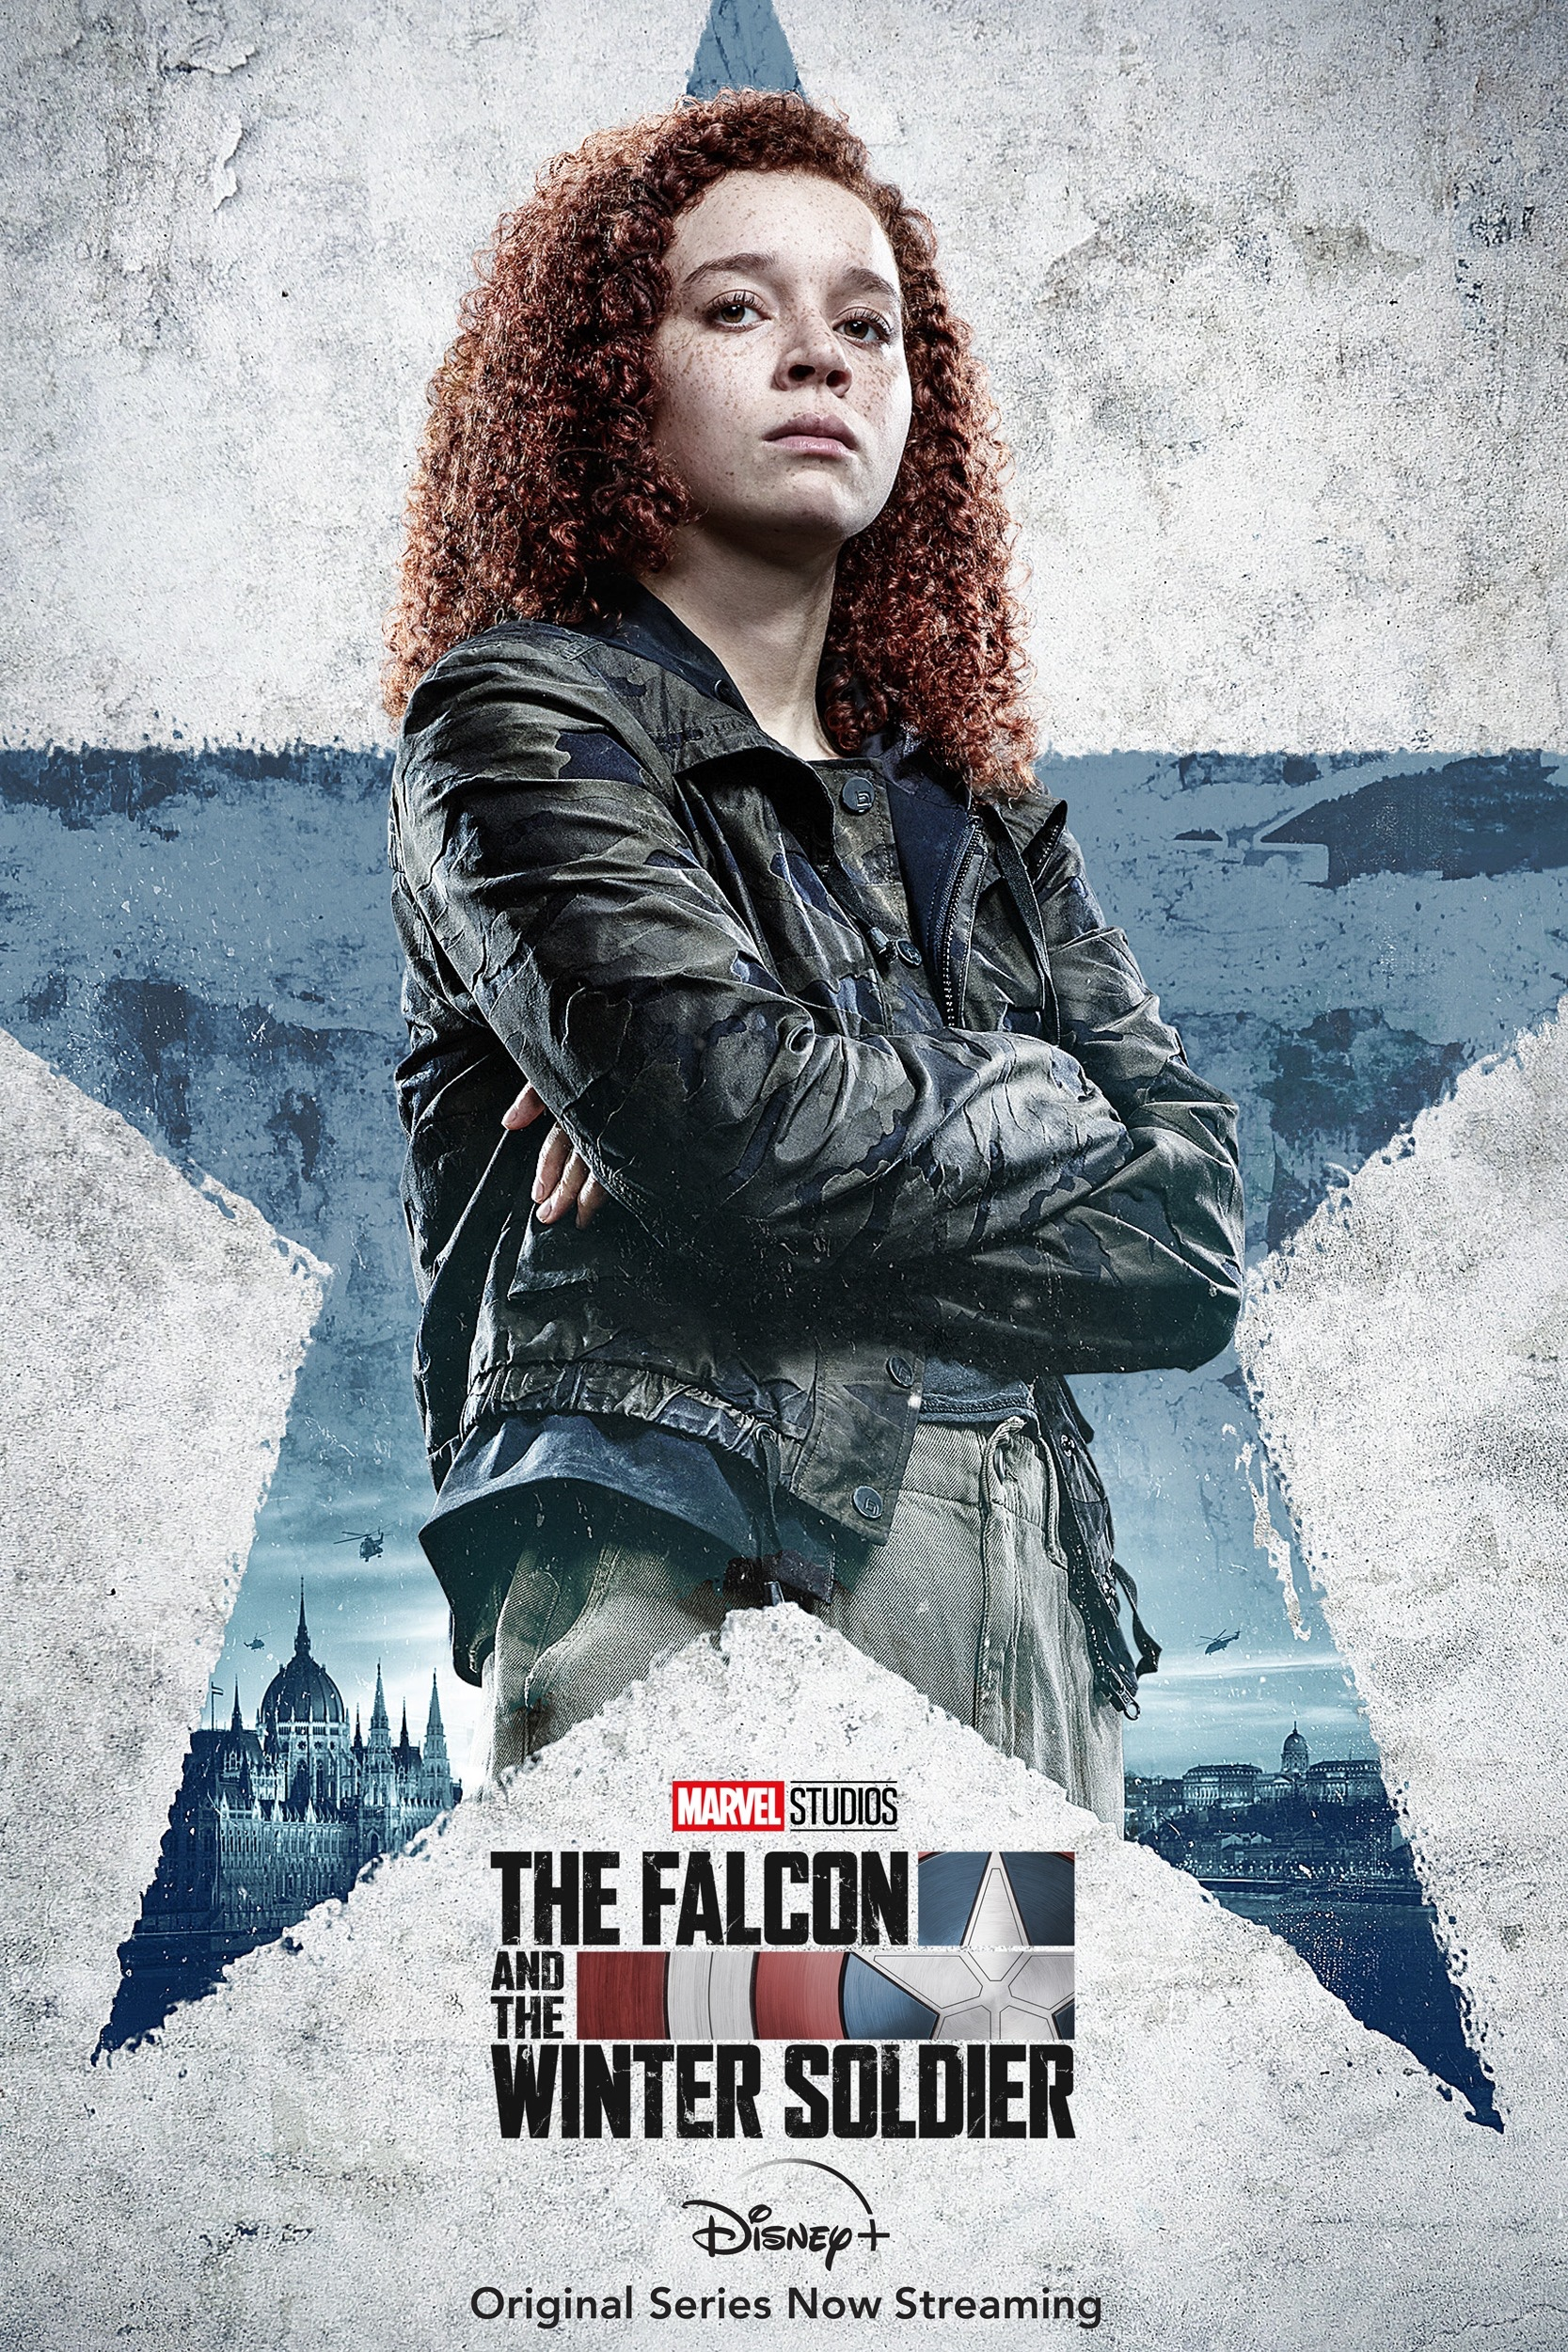 Karli Morgenthau The Falcon And The Winter Soldier Character Poster